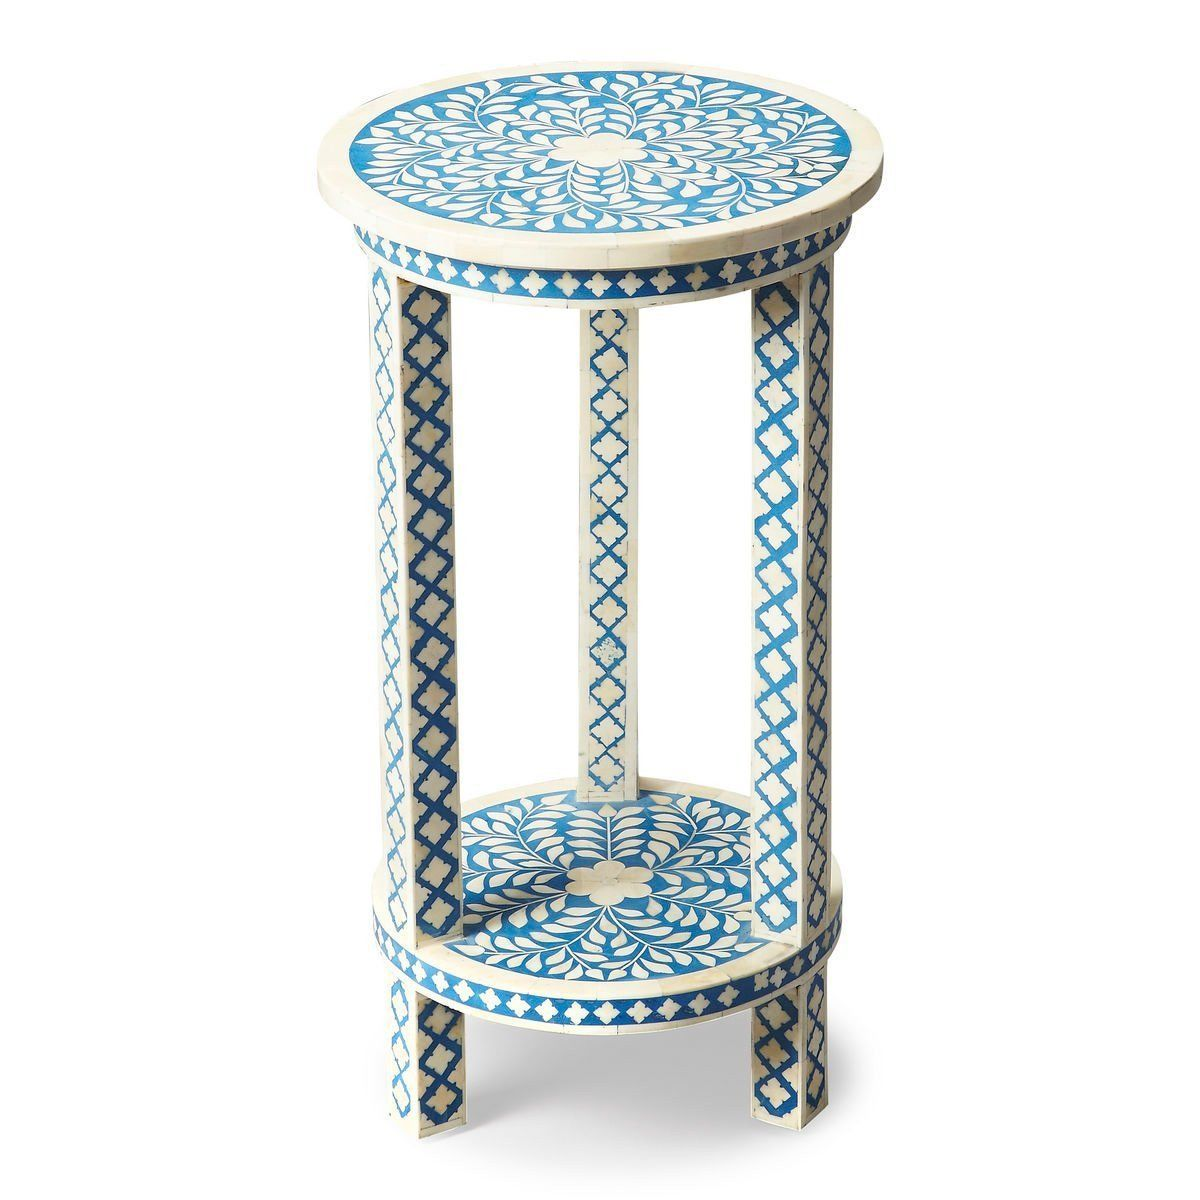 butler furniture amanda traditional round bone inlay accent table side tables but blue navy opentable small mosaic cherry dining room and chairs inch outdoor tablecloth lucite